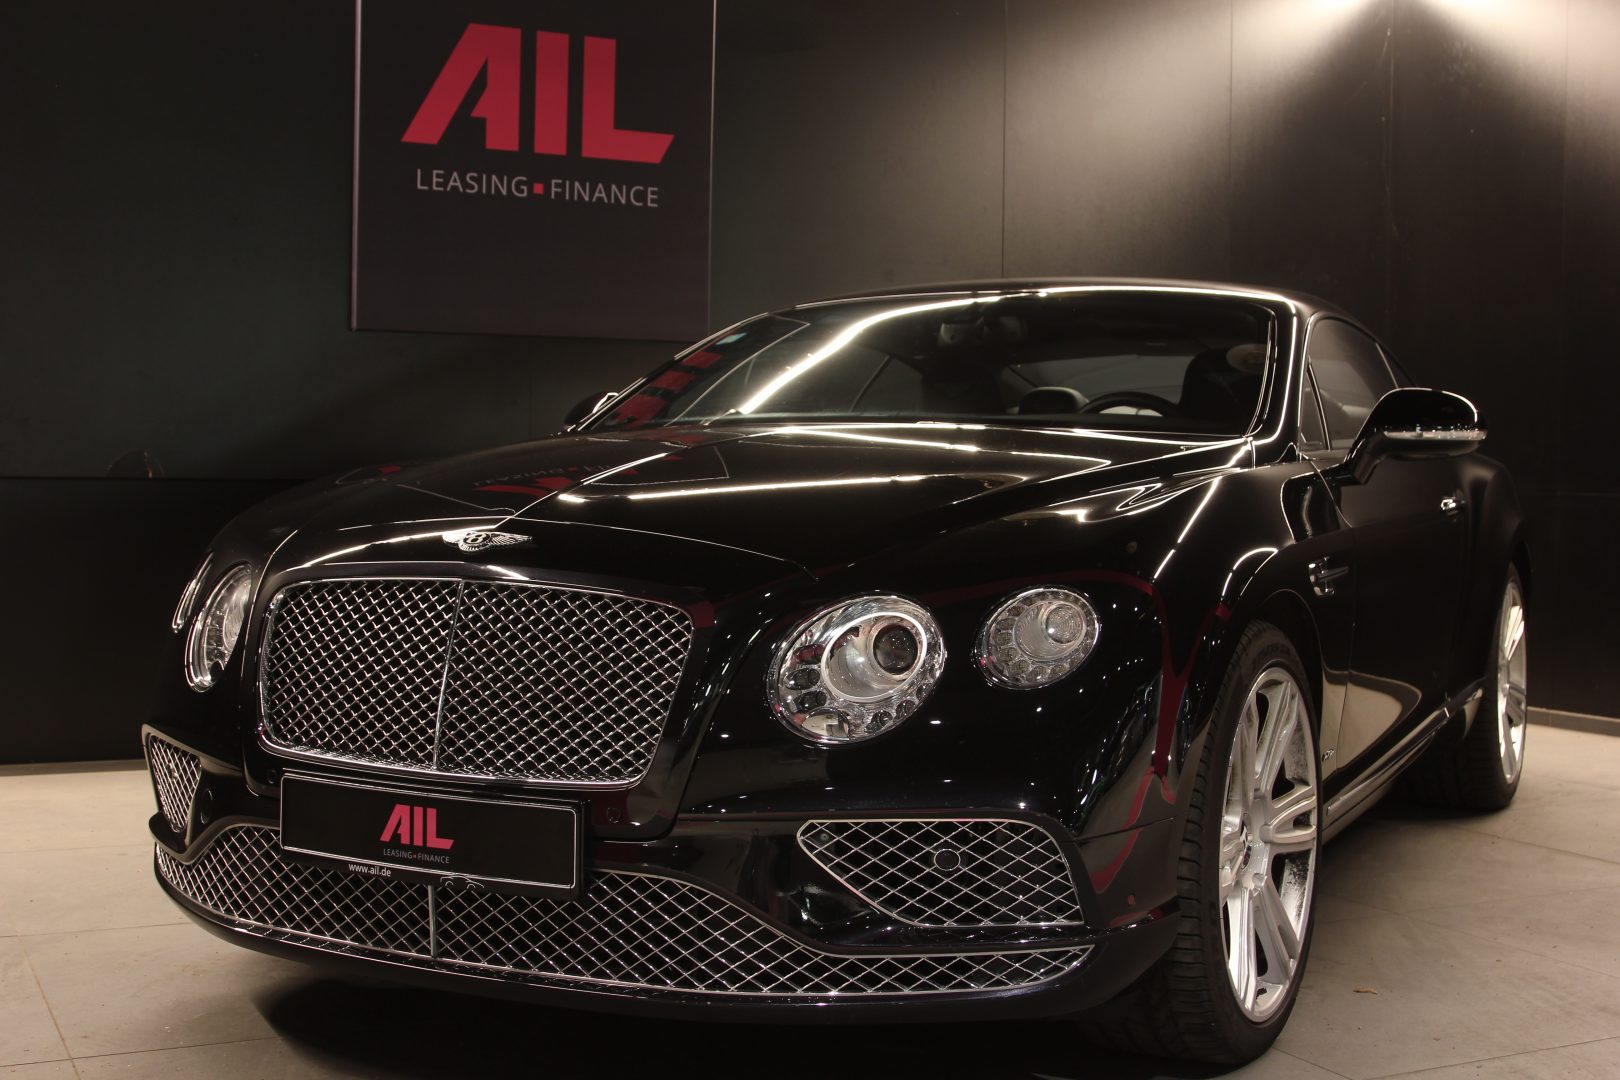 AIL Bentley Continental GT W12 8